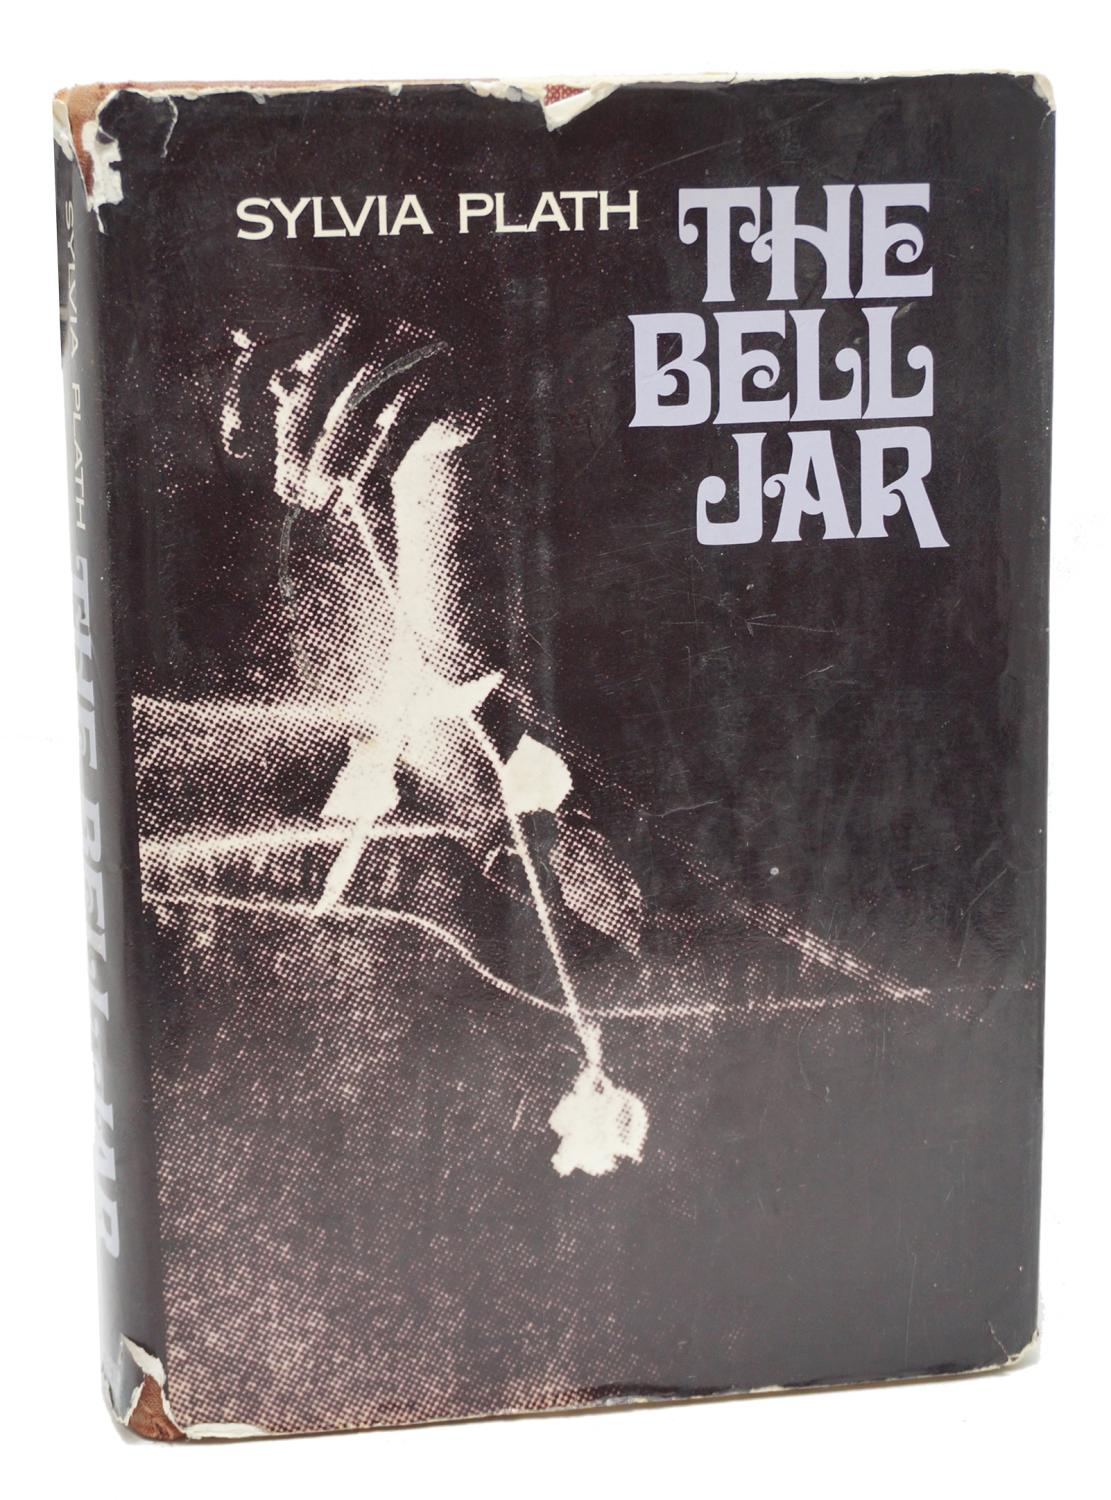 the element of patriarchy in sylvia plaths the bell jar I read the bell jar as a high school student many years ago and have loved sylvia plath ever since her poetry in particular is powerful, fierce, full of venom i can only take it in small doses i truly wish she hadn't put her head in that gas oven, as she had the talent to well eclipse her husband your analysis is very thoughtful voted up and more.